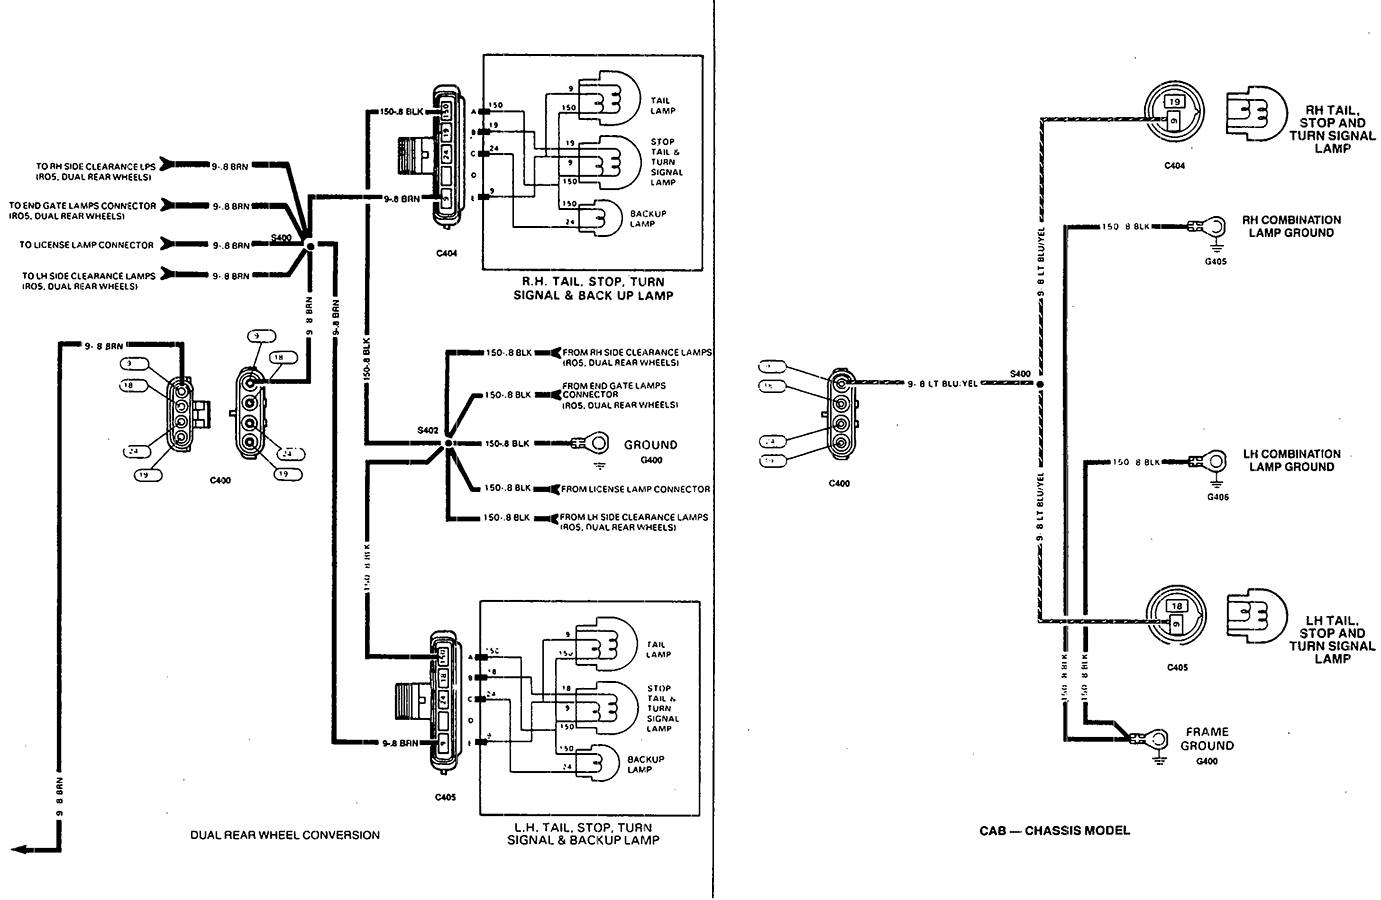 Wiring Diagram 2000 Chevy Silverado - Wiring Diagram Data - Light Wiring Diagram